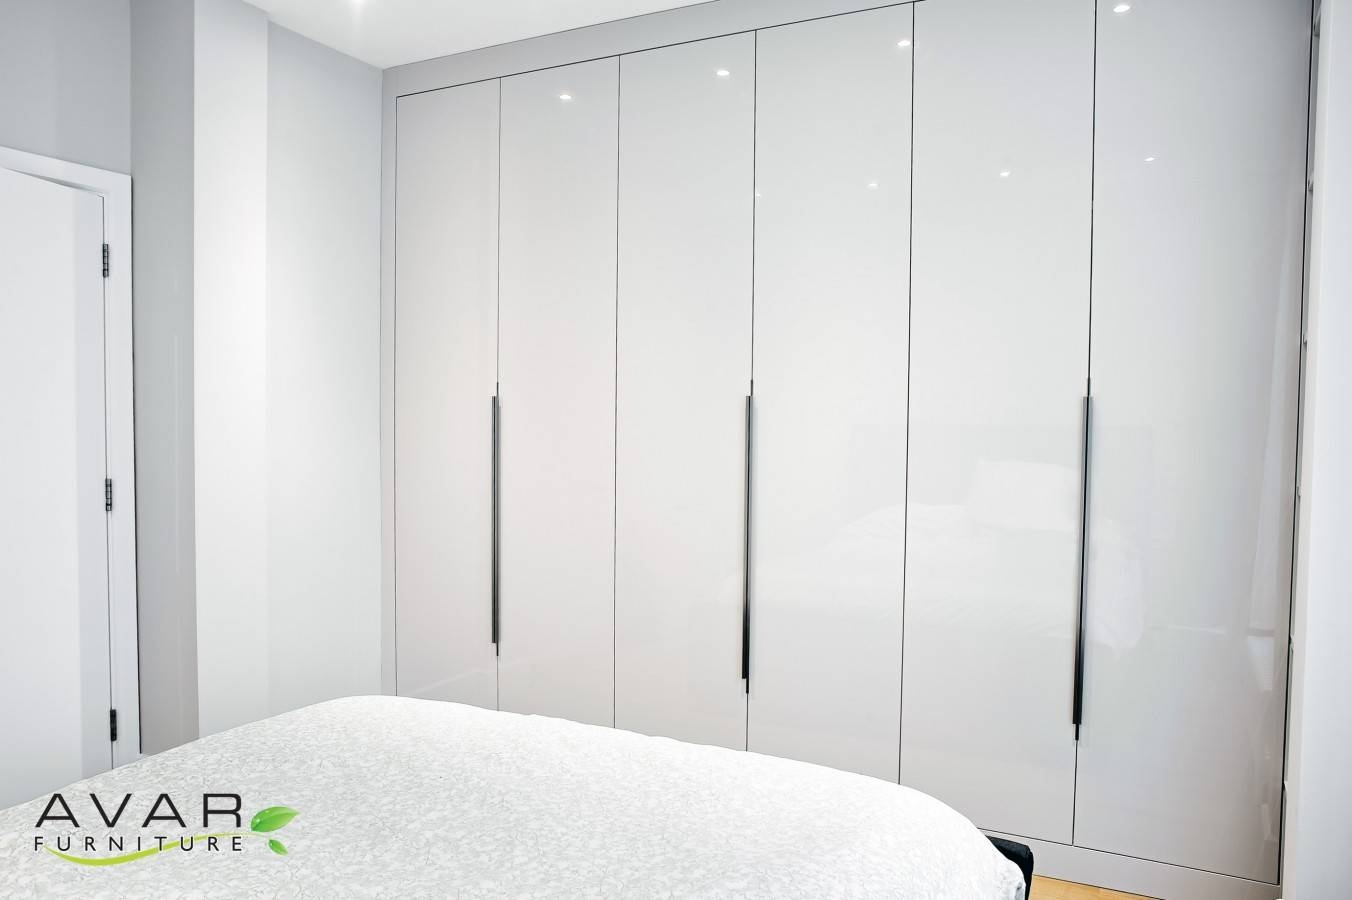 Ƹӝʒ Fitted Wardrobe Ideas Gallery 19 | North London, Uk | Avar For Wardrobes White Gloss (View 7 of 15)